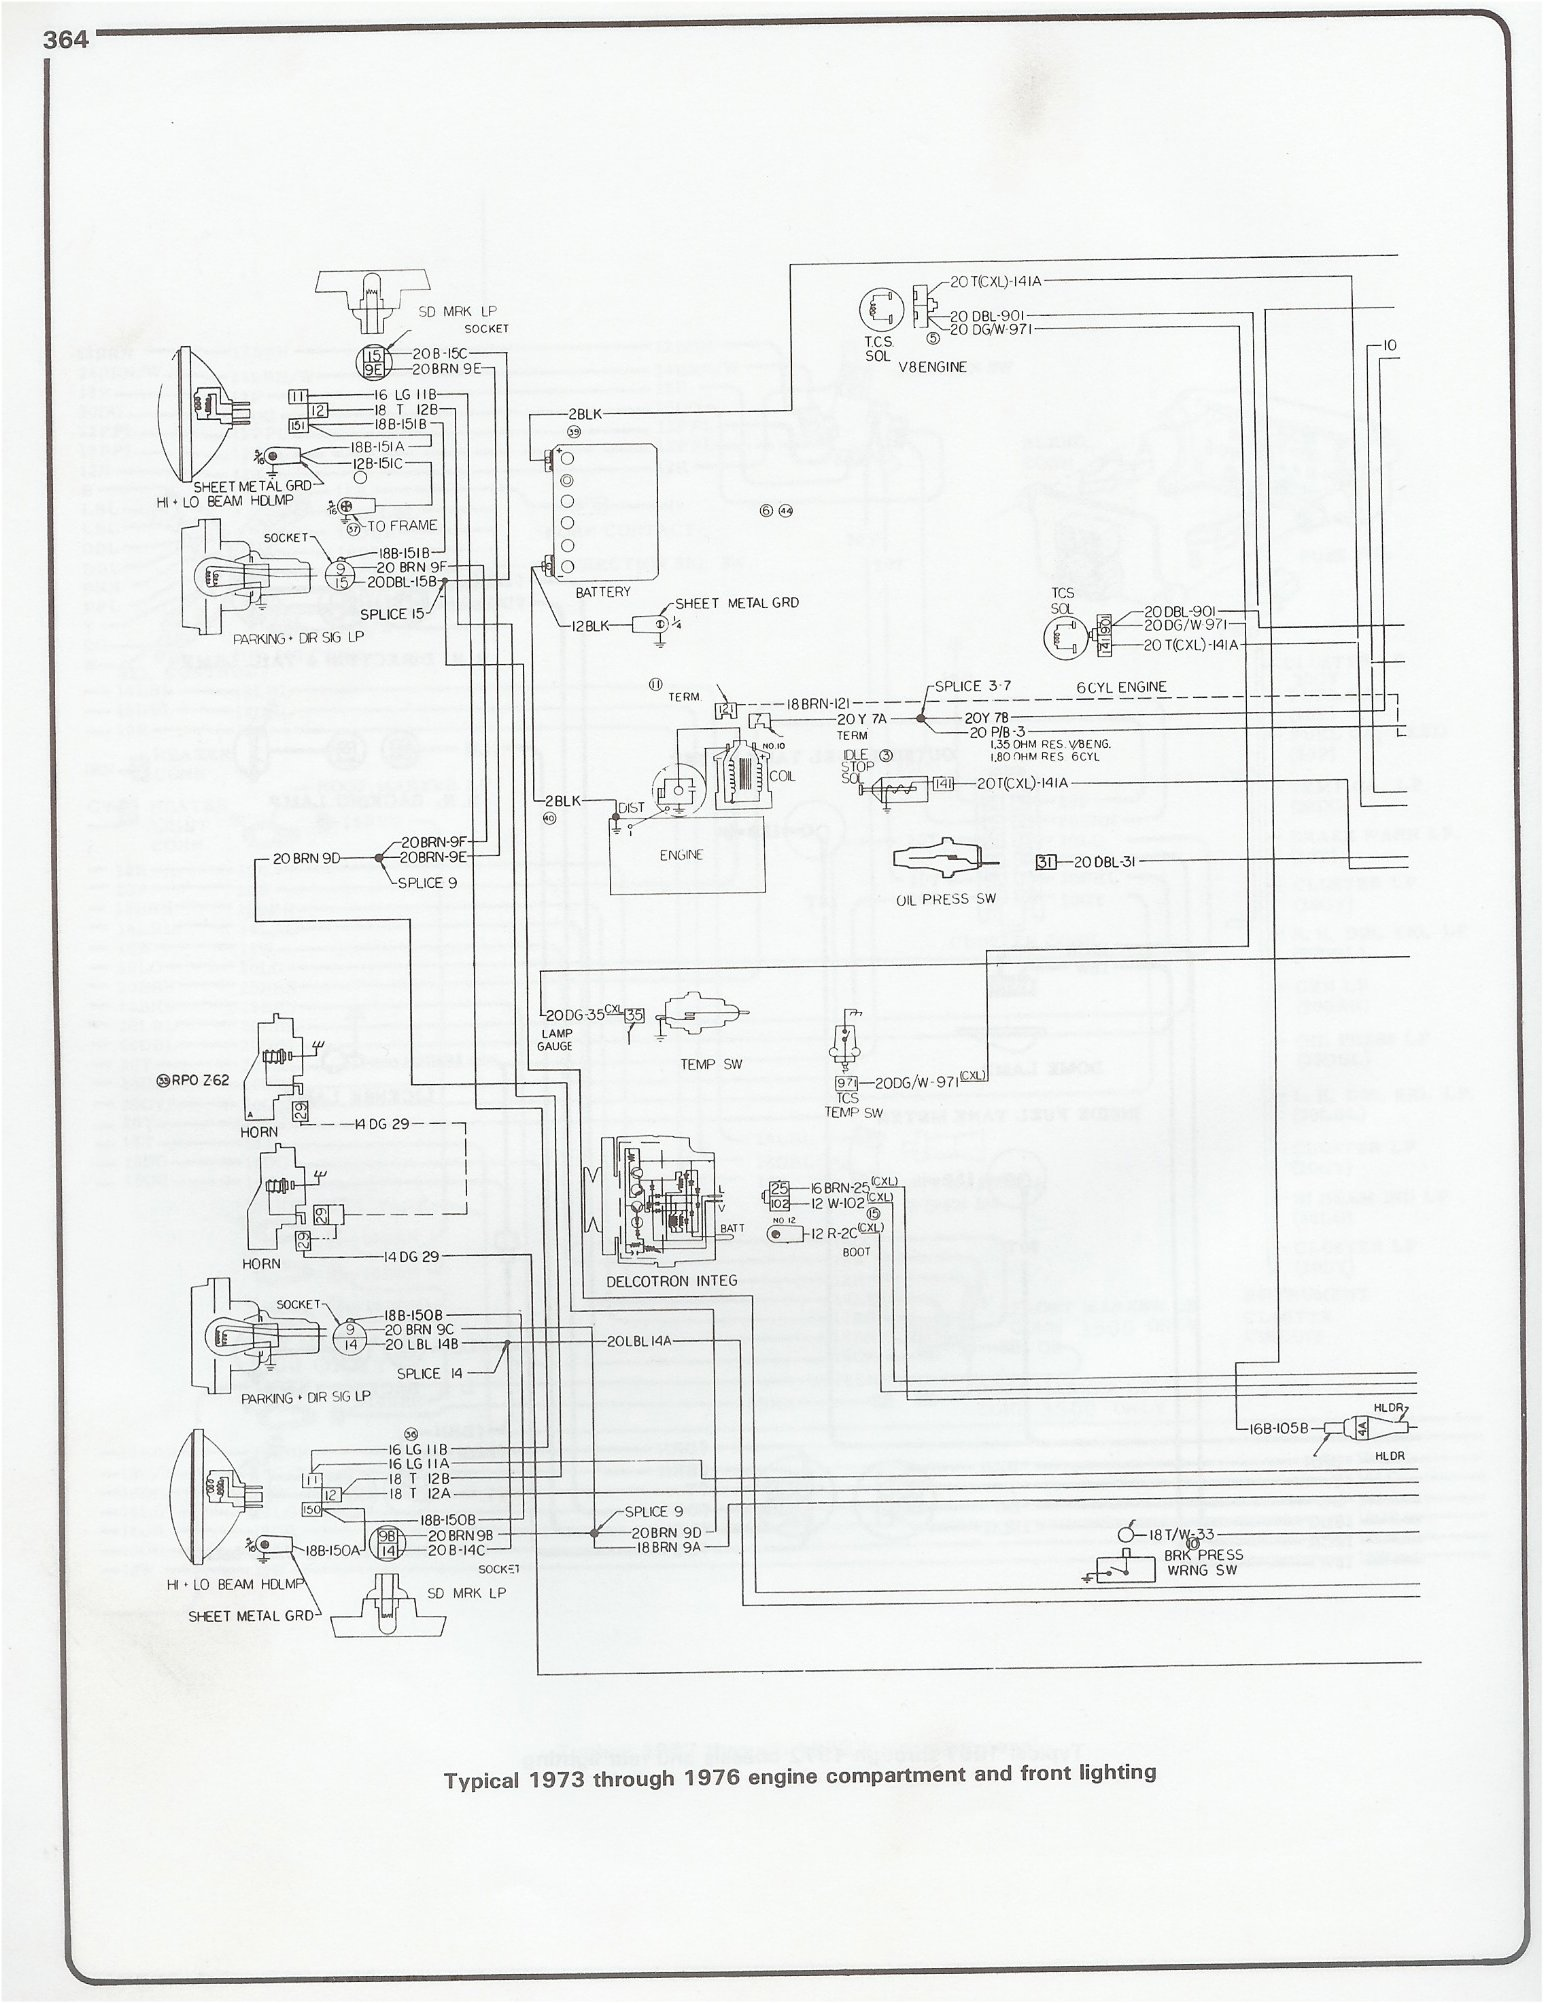 73 76_eng_frt_light complete 73 87 wiring diagrams 1984 chevy truck headlight wiring diagram at n-0.co